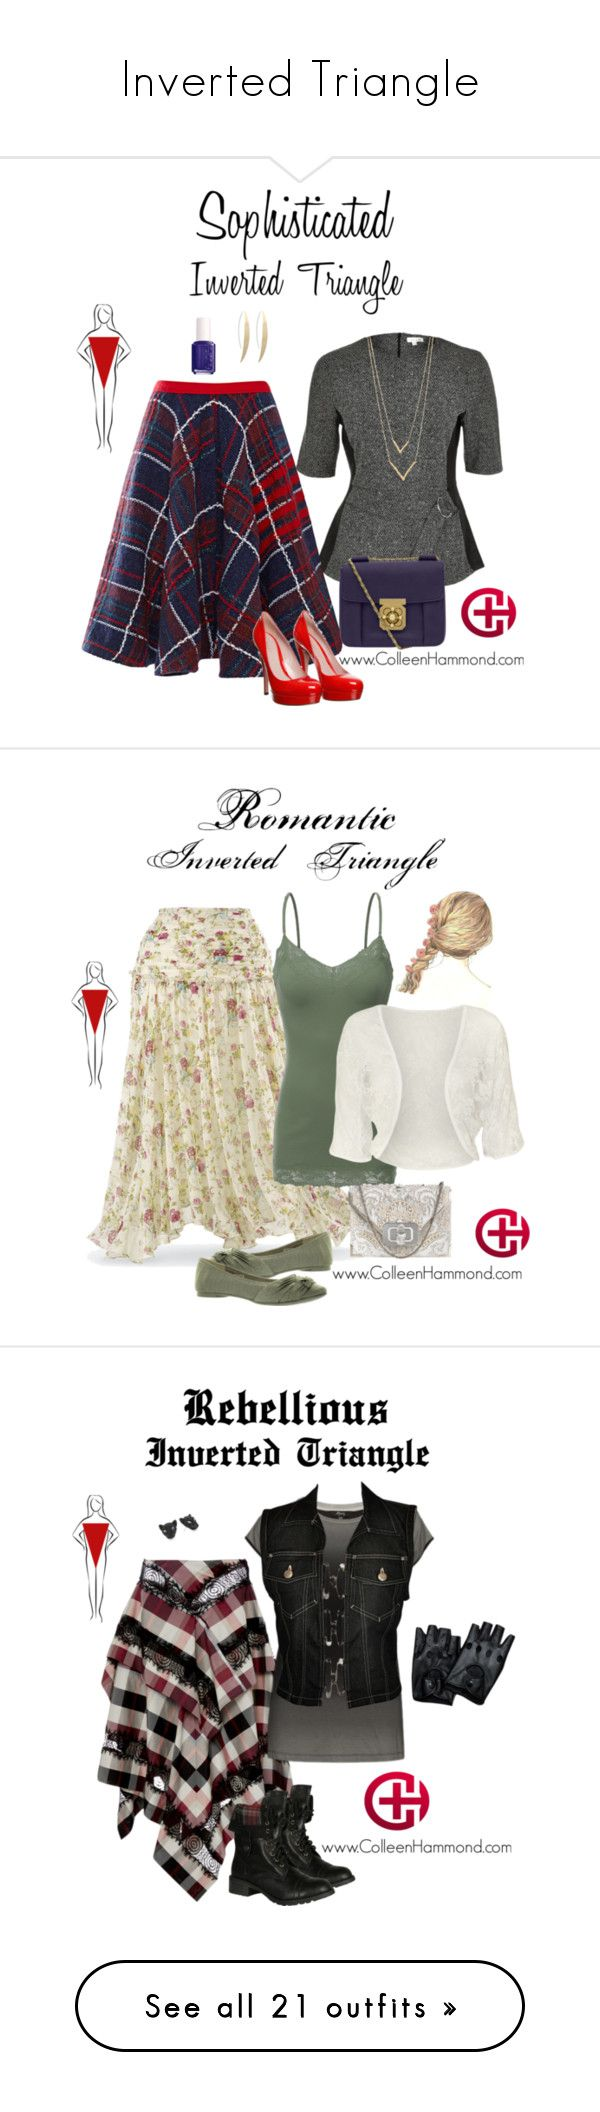 Inverted Triangle by colleen-hammond on Polyvore featuring polyvore fashion style River Island Thom Browne Gucci Chloé Jennifer Zeuner Essie clothing Bozzolo WearAll Marchesa Rocket Dog Wes Gordon Jean-Paul Gaultier Soda Betsey Johnson Tory Burch Vivienne Westwood Anglomania Harmony Paris Hot Topic Schone Stella Jean Noor Fares Michael Antonio maurices Balmain Michael Kors FOSSIL H&M LifeStride Pumps VIVETTA Marni Emilio Pucci Gianvito Rossi ERIN Erin Fetherston J.TOMSON Dolce&Gabbana Polo…